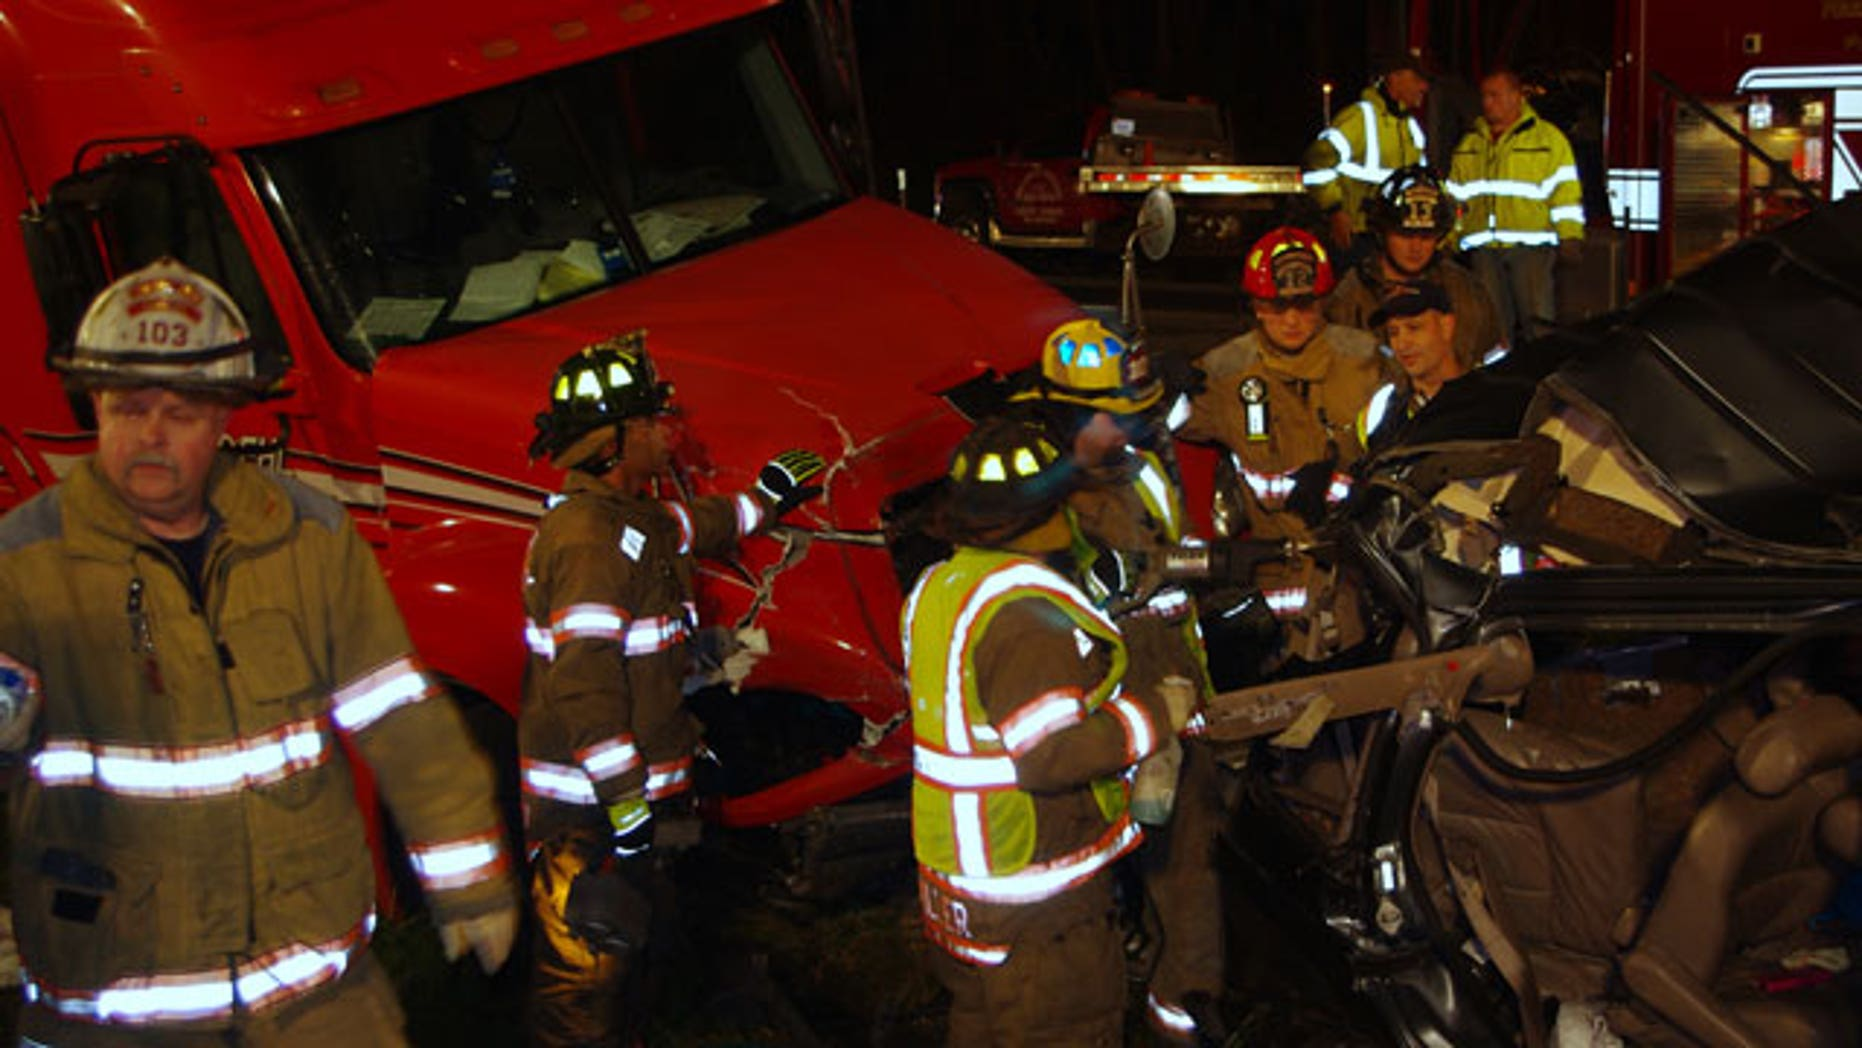 October 27, 2011: A photo released by the Indiana State Police shows firemen surveying the wreckage of a fatal accident on the Indiana Toll Road near Bristol, Ind.